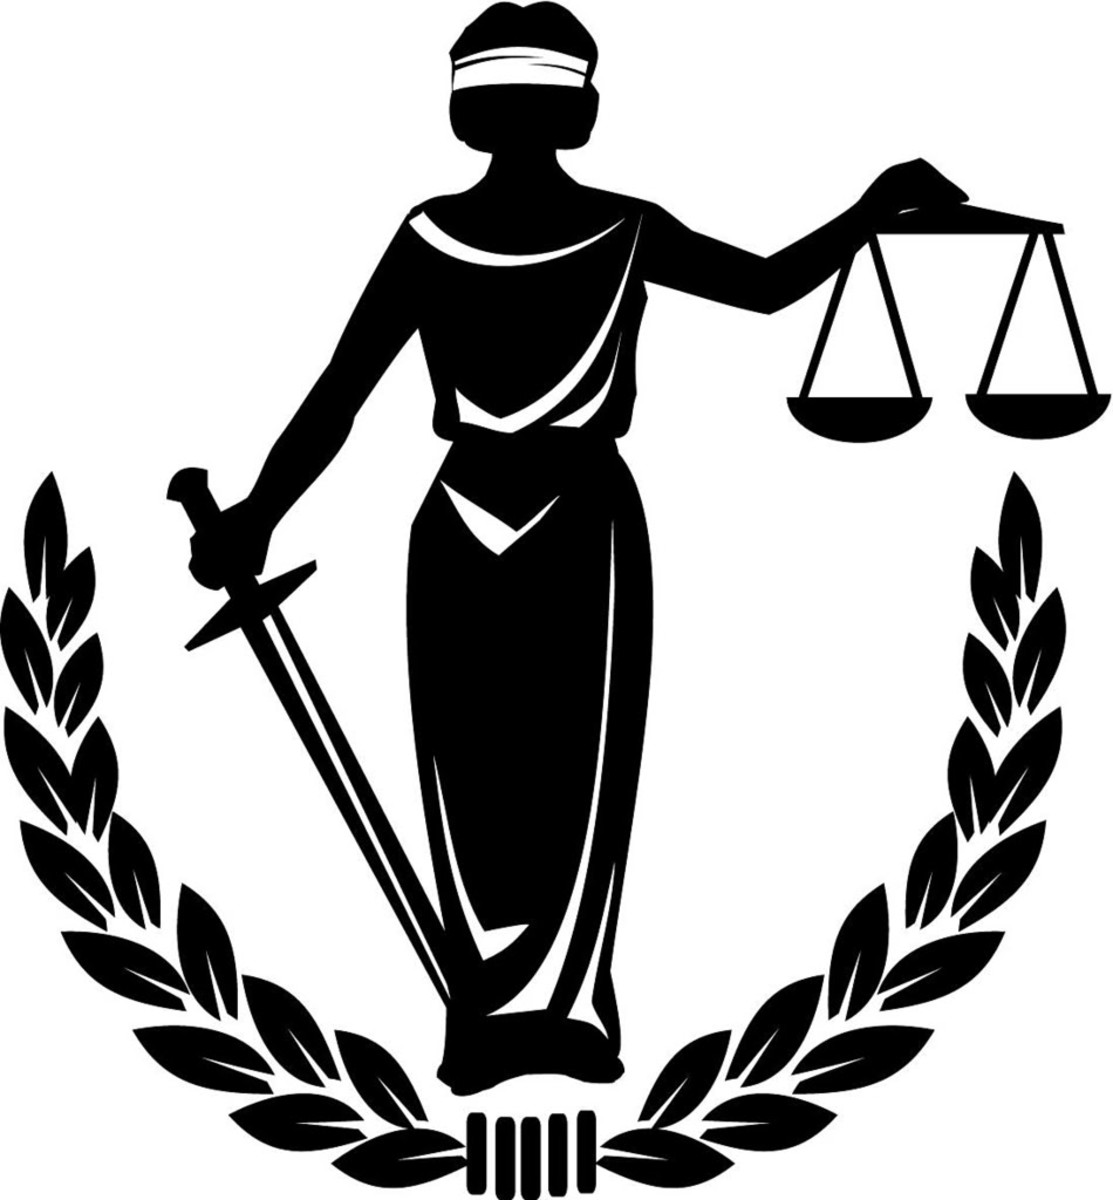 BLIND LADY JUSTICE IS ACTUALLY BLINDFOLDED NOT BLIND